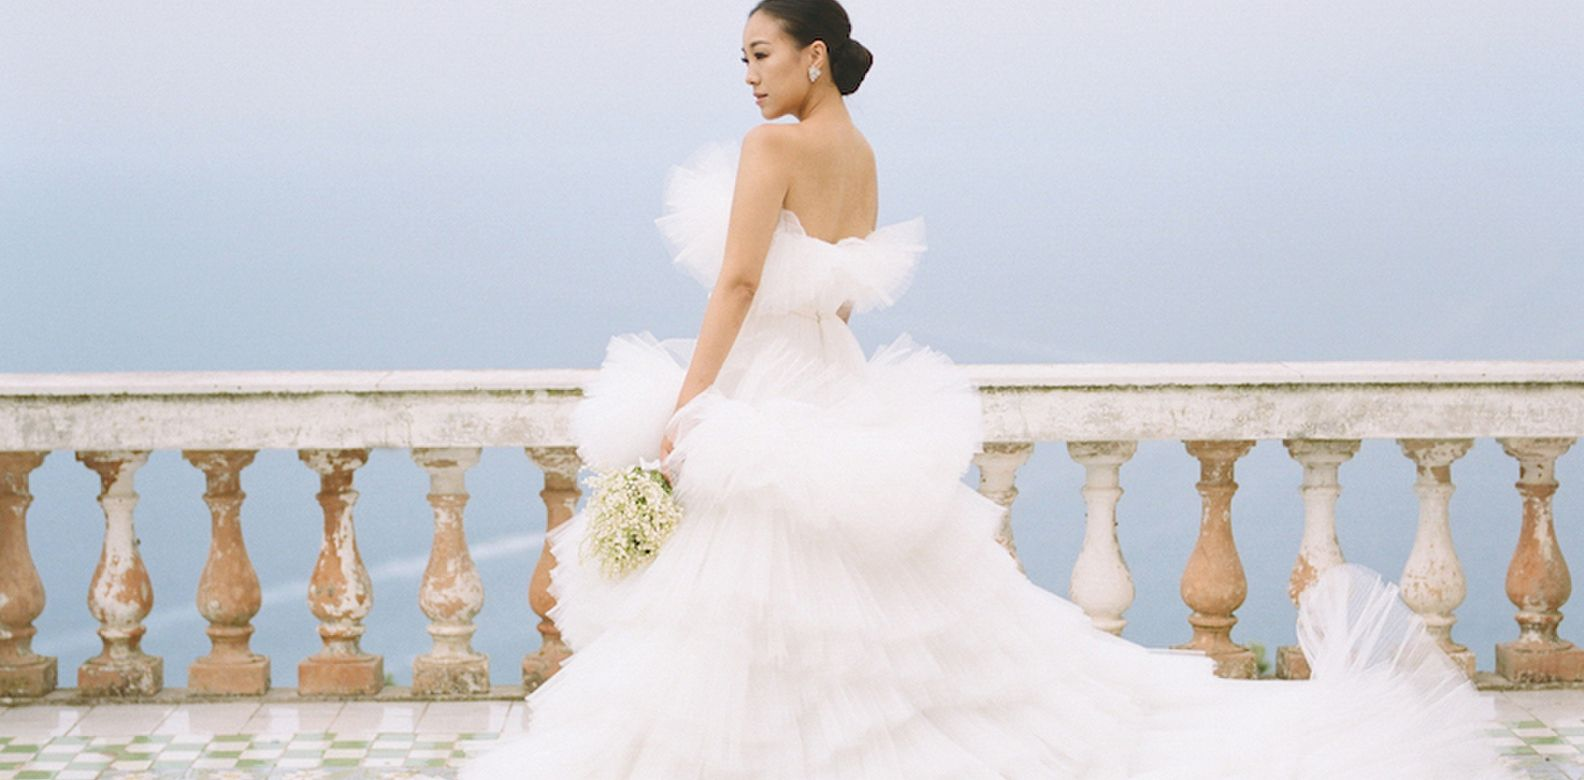 What its like to have giambattista valli design your wedding what its like to have giambattista valli design your wedding dress junglespirit Images